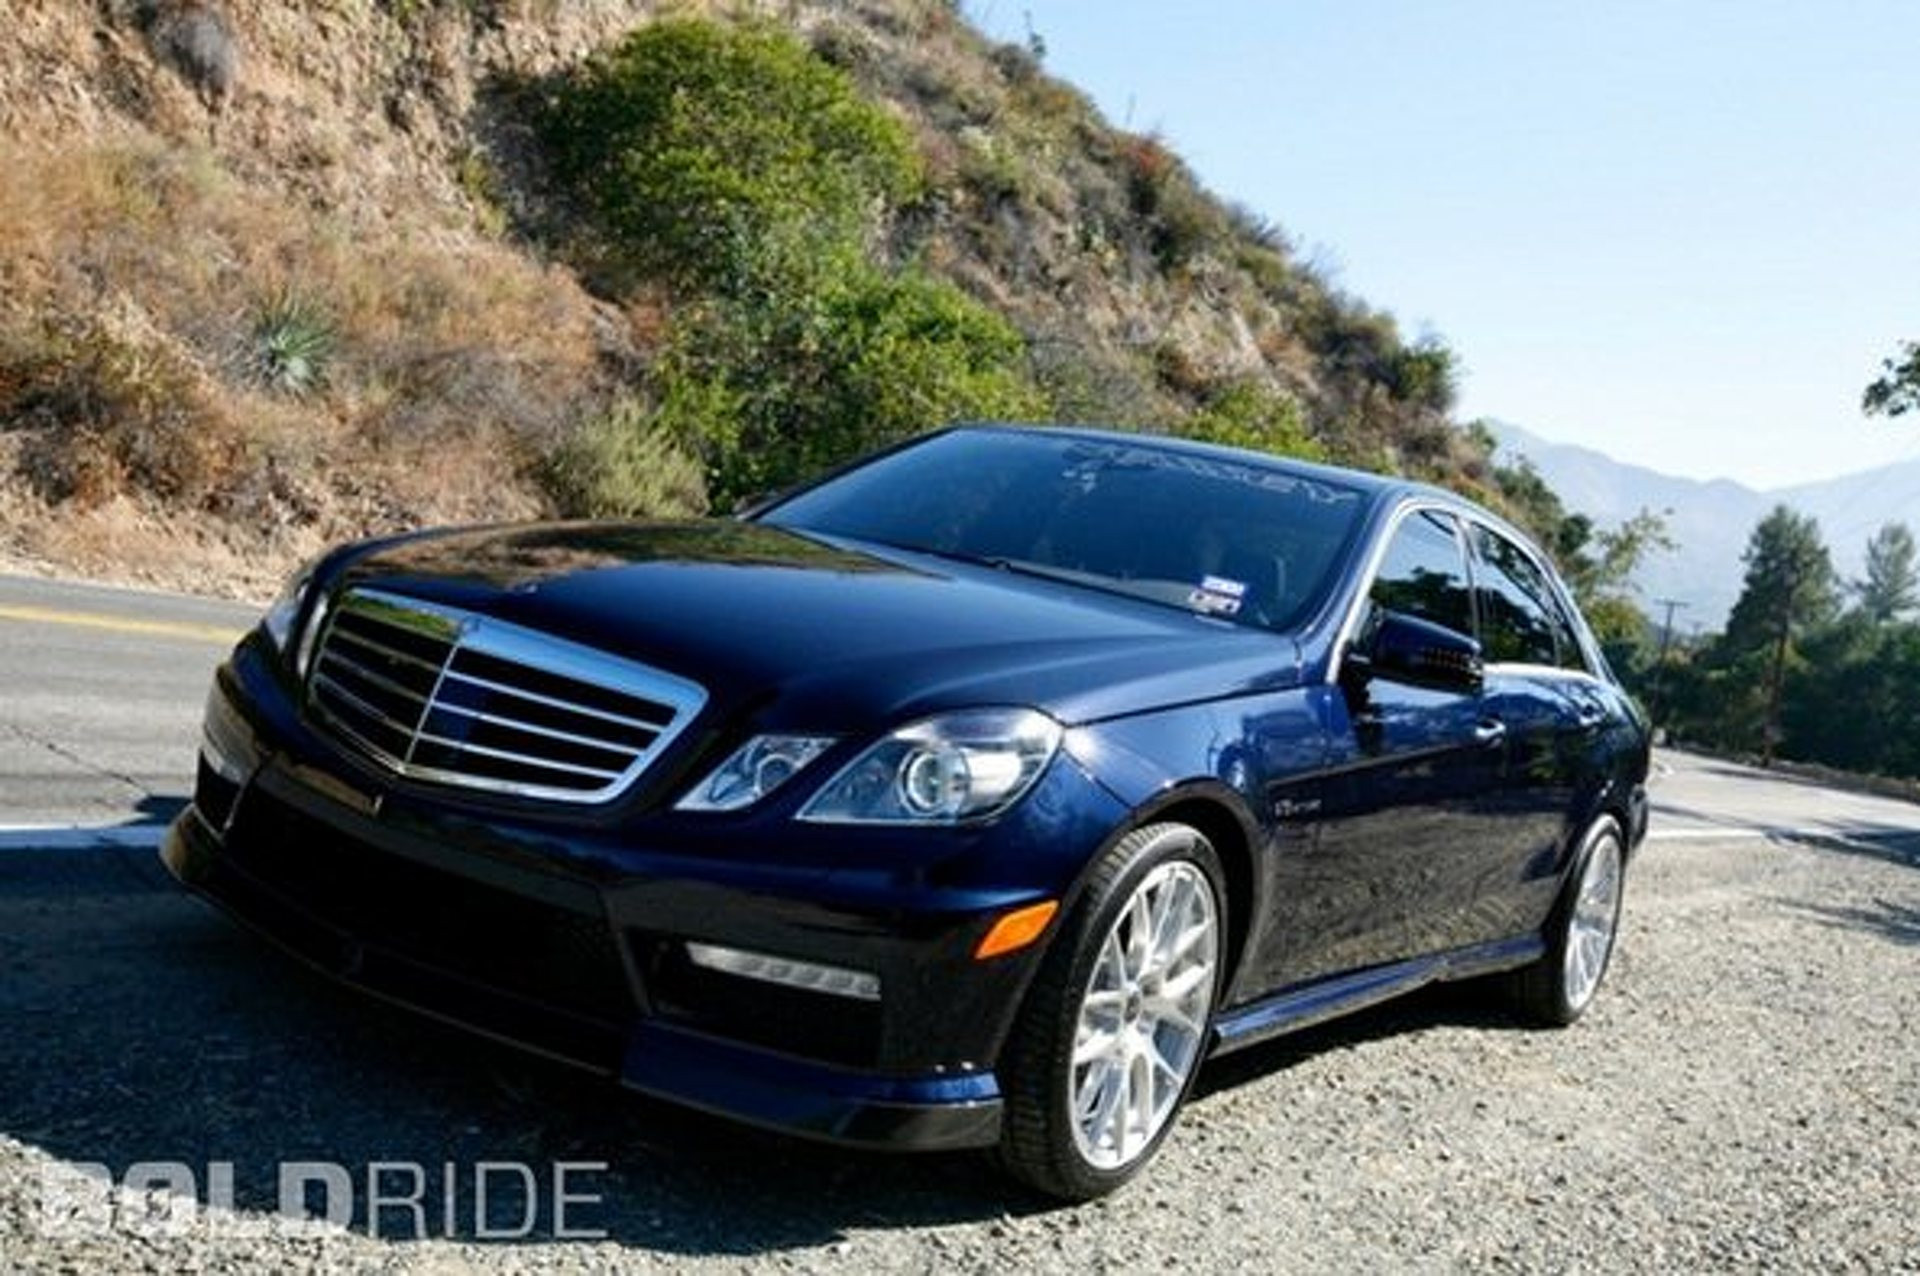 5 Reasons The Hennessey E63 Was The Most Popular Ride This Week